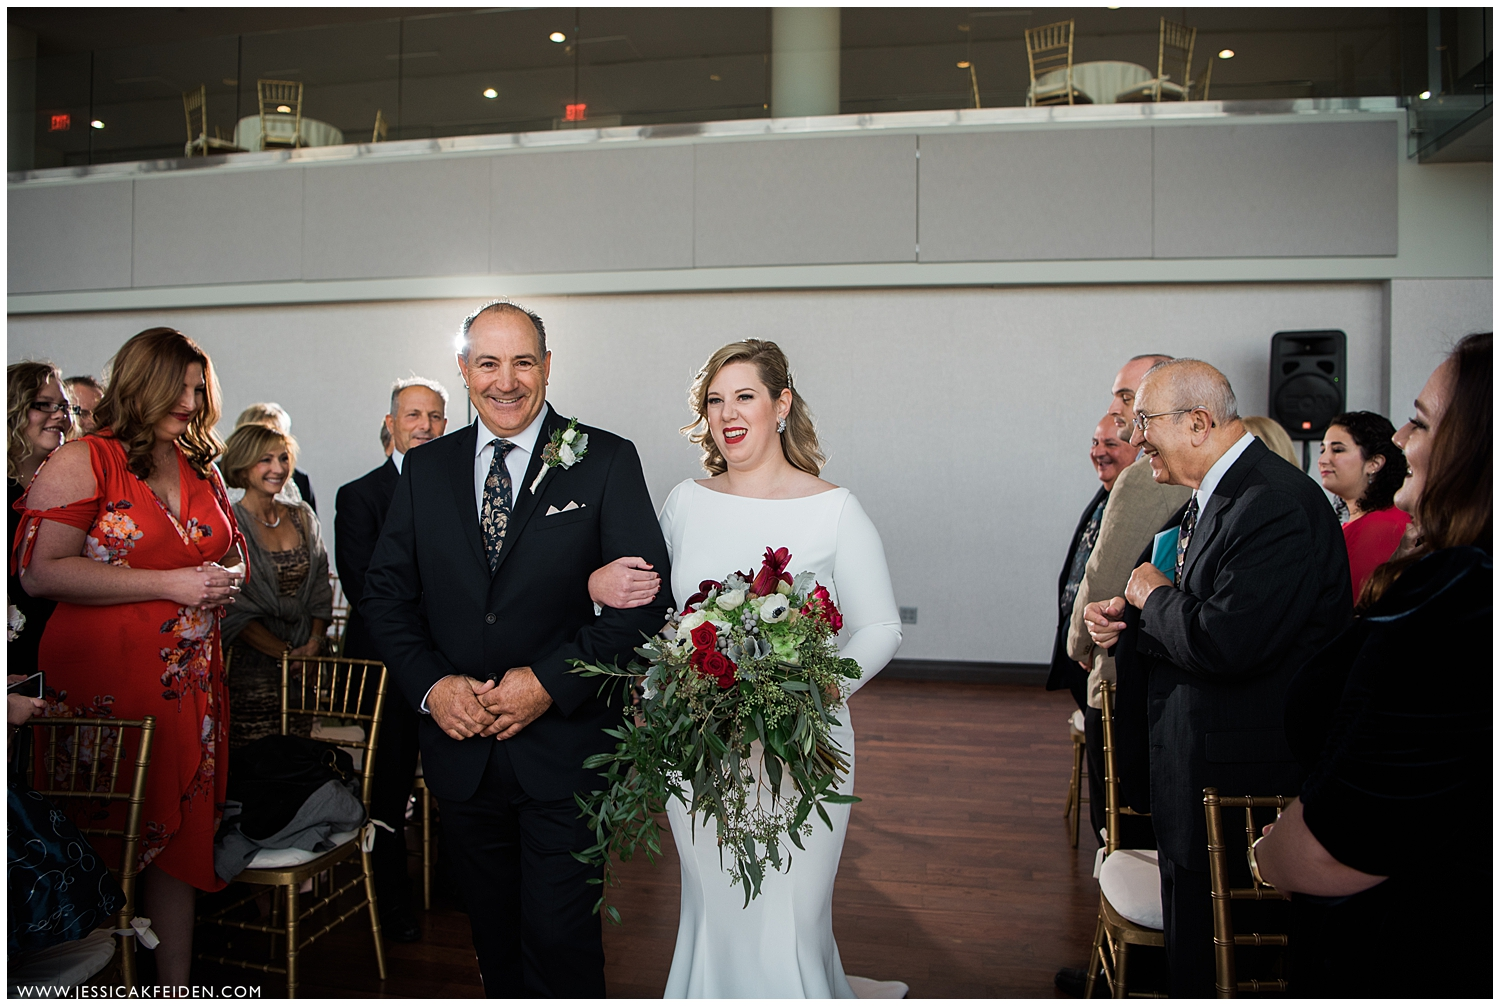 Jessica K Feiden Photography_The State Room Boston Wedding Photographer_0039.jpg